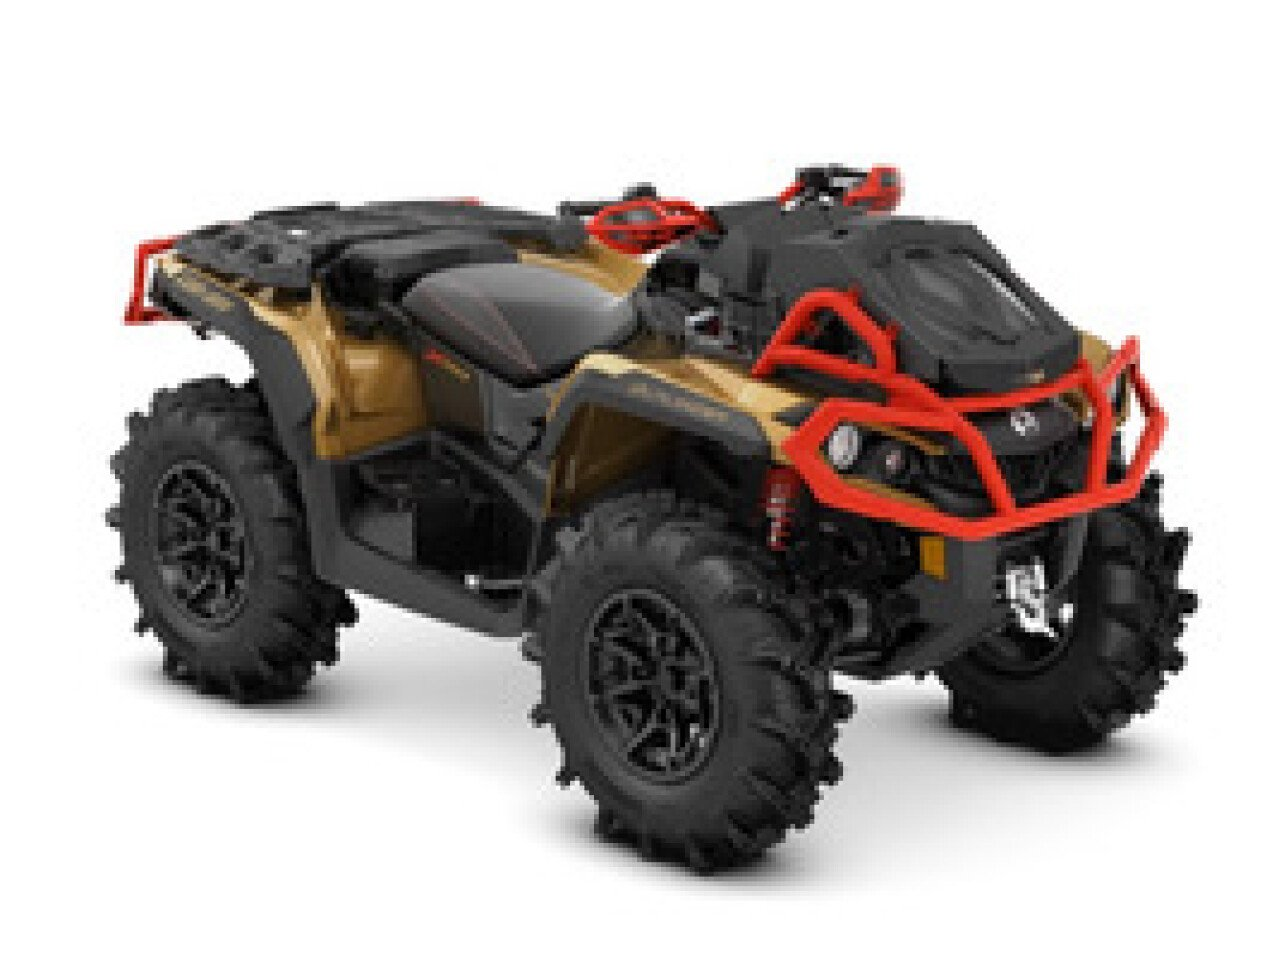 Kbb Value Atv >> 2019 Can-Am Outlander 1000R for sale near Fort Worth, Texas 76116 - Motorcycles on Autotrader